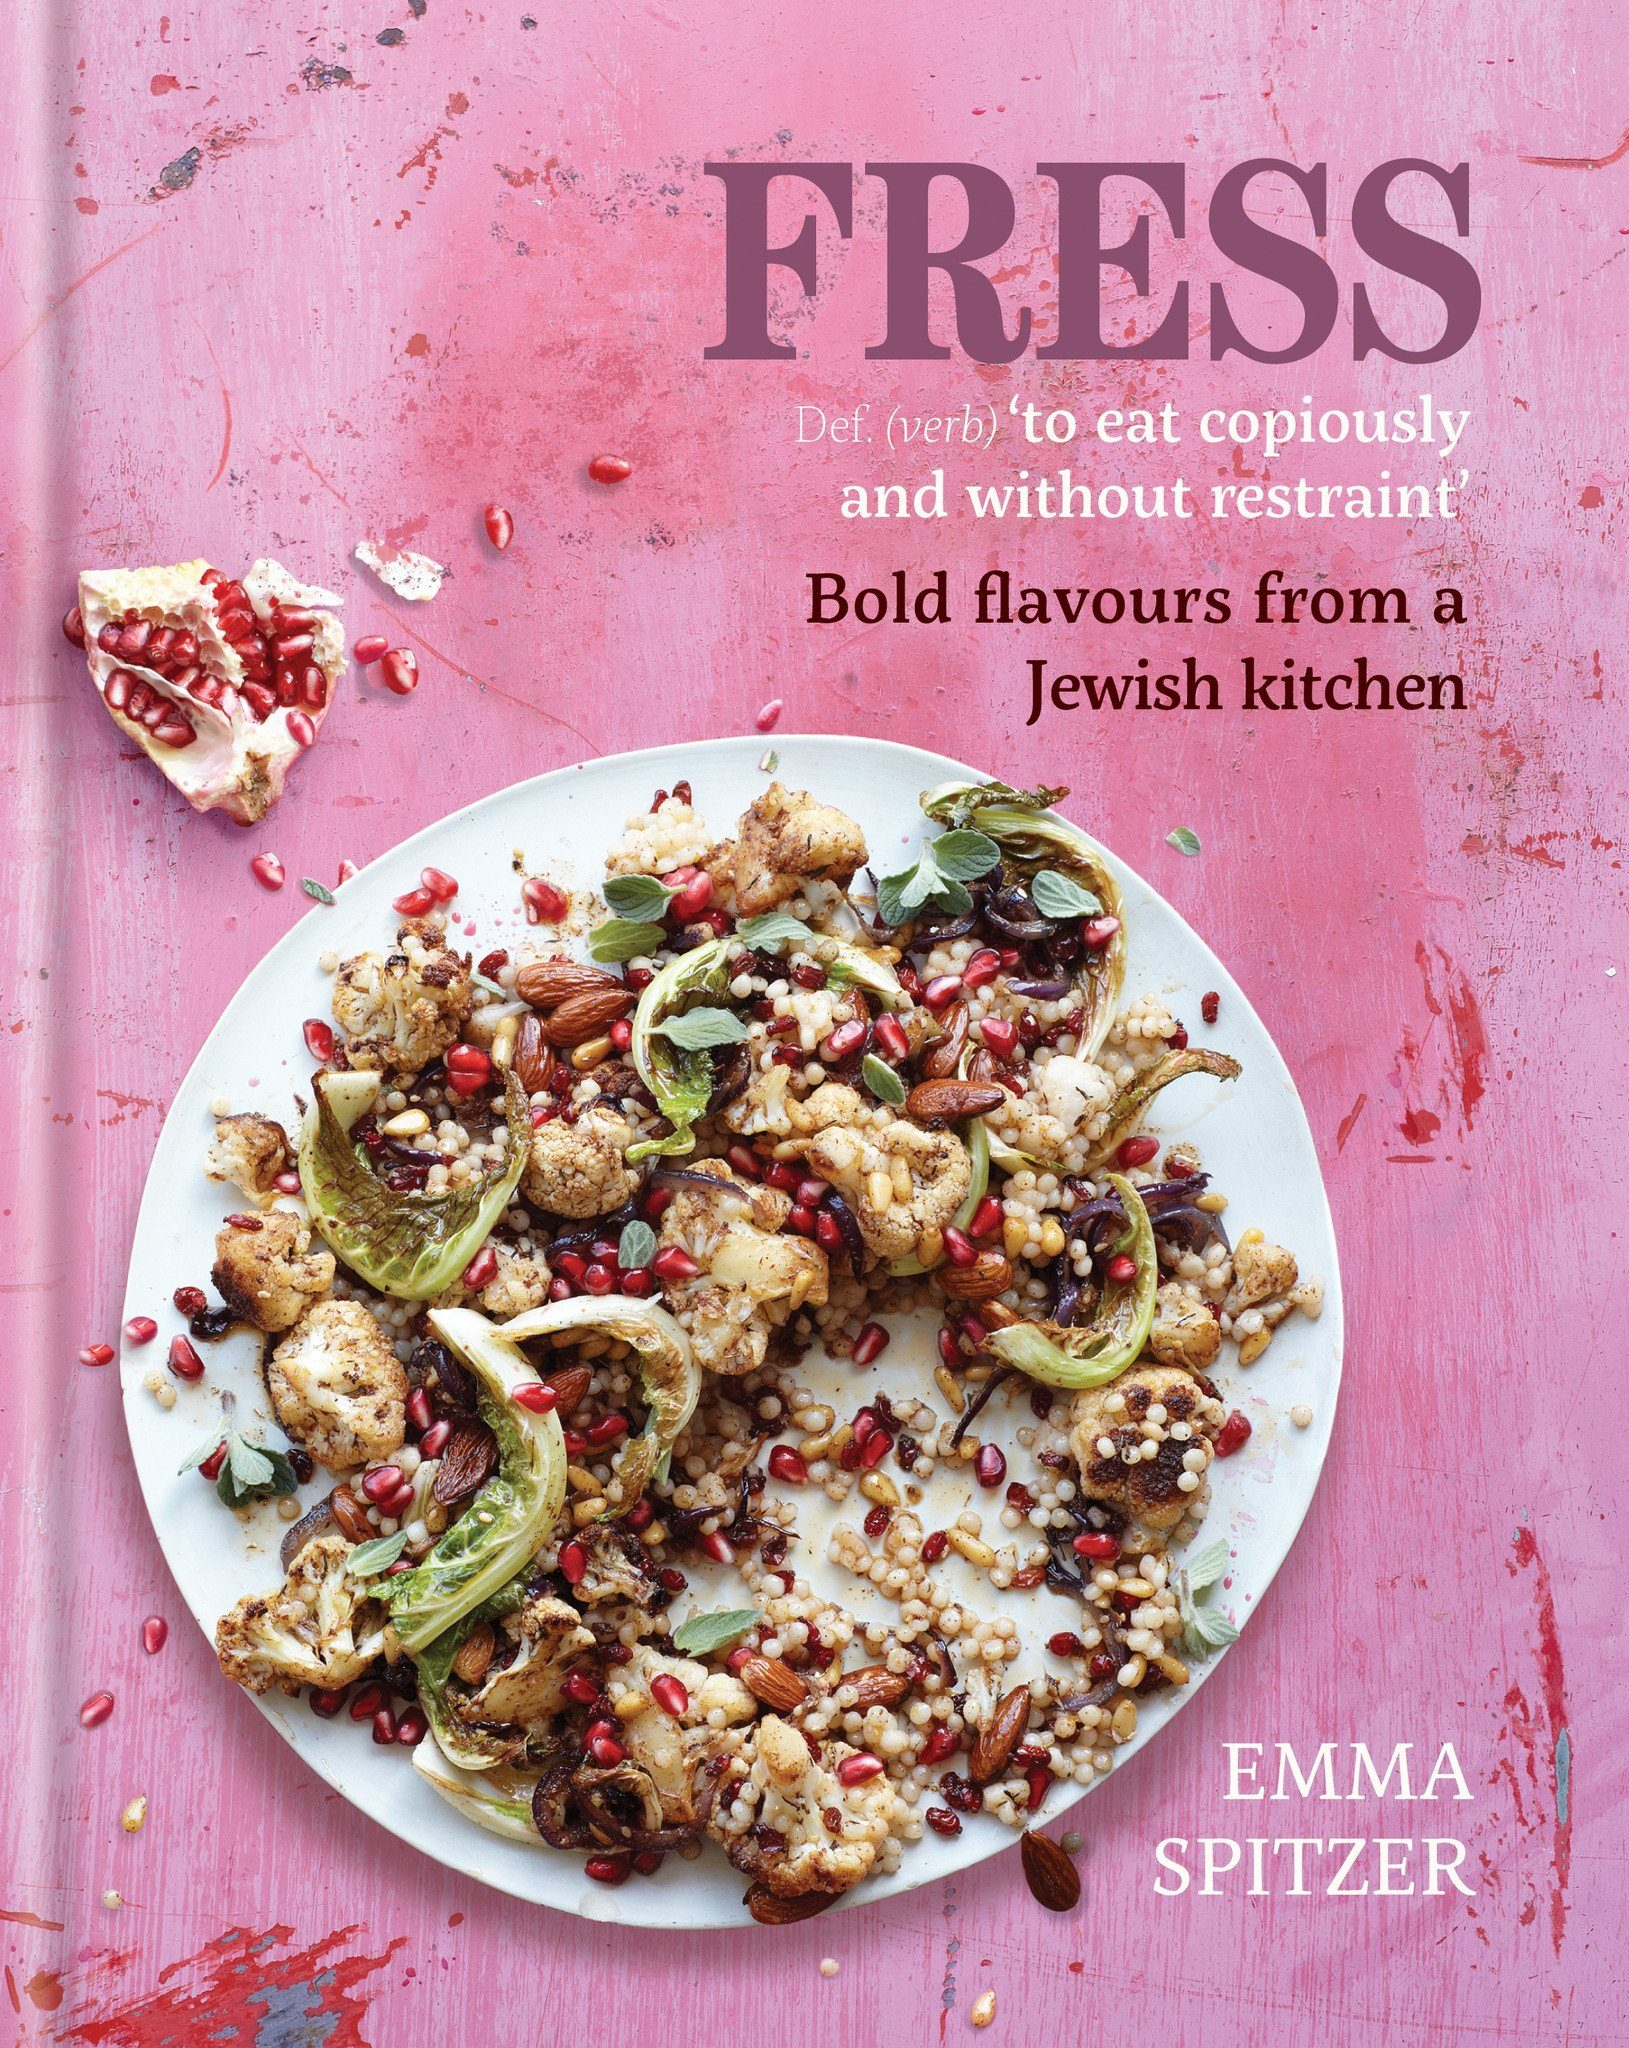 'Fress' by Emma Spitzer (Signed Copy) & Middle Eastern Spice Tin, 9 Spices & Handmade Silk Sari Wrap - Spice Kitchen - Spices, Spice Blends, Gifts & Cookware